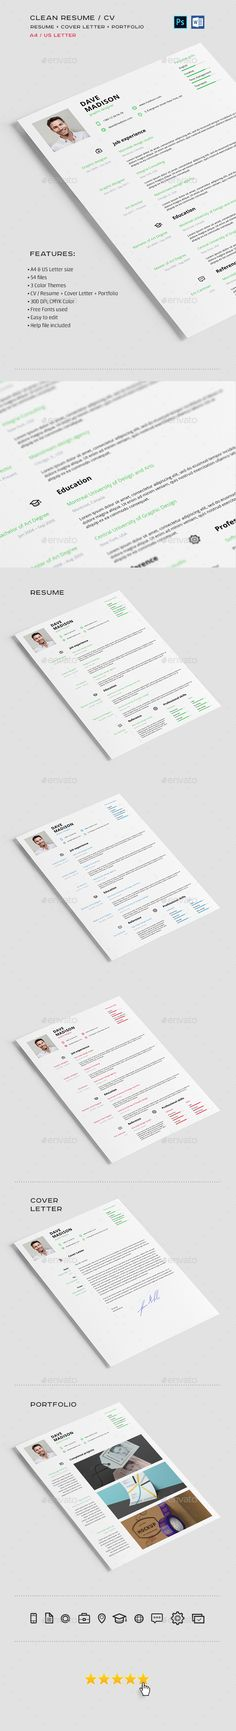 Clean Resume / CV  — PSD Template #doc #print • Download ➝ https://graphicriver.net/item/clean-resume-cv/18299097?ref=pxcr